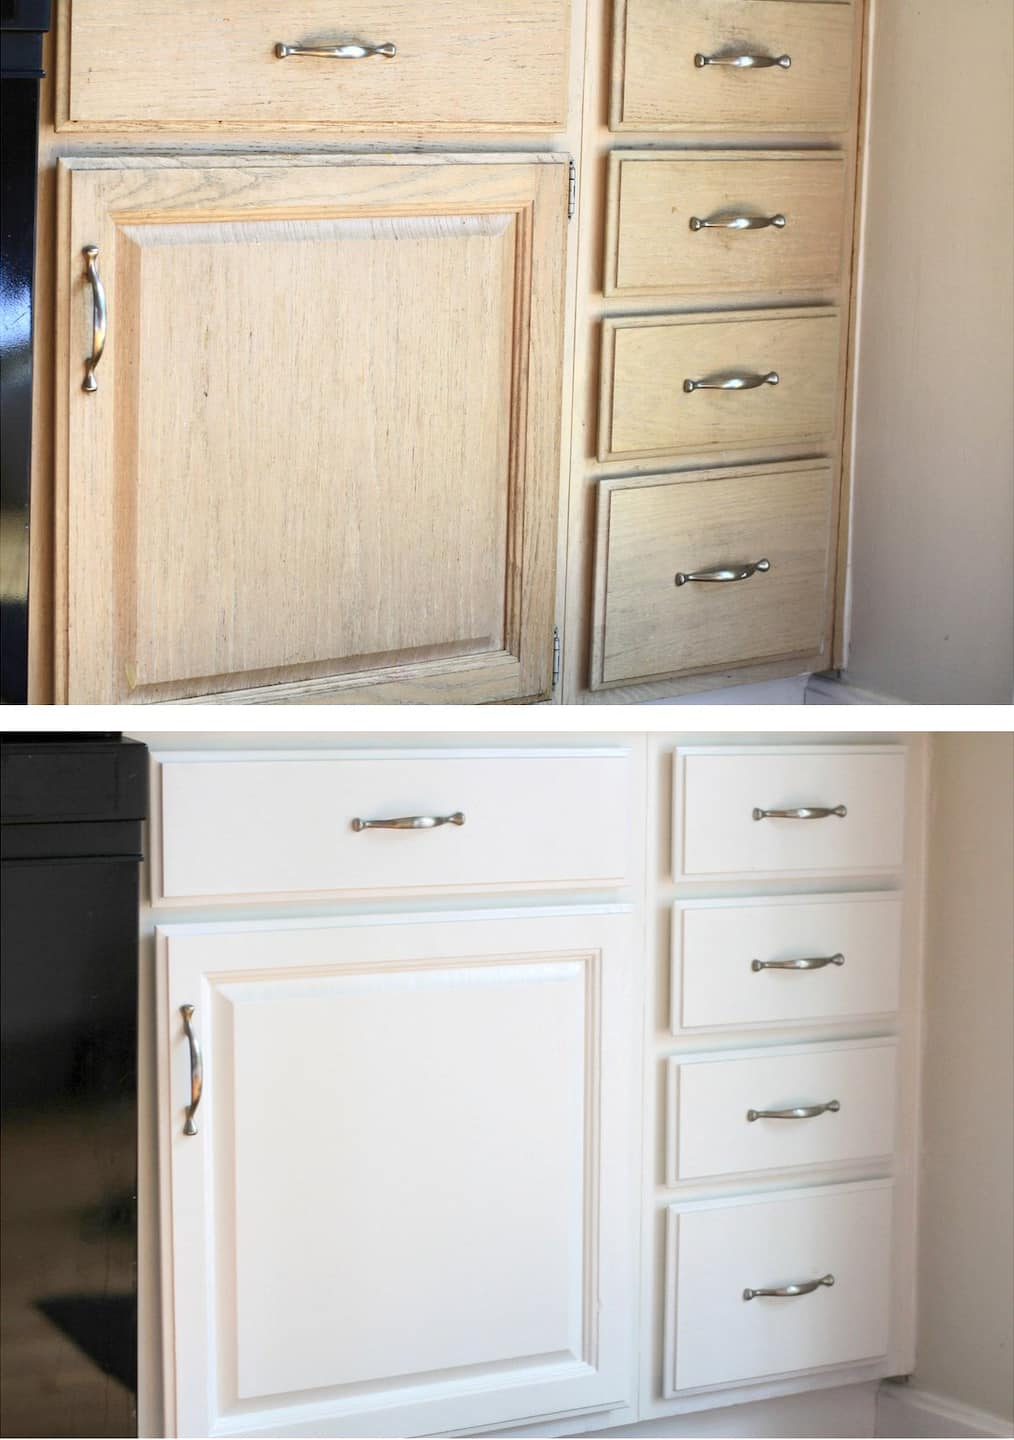 wood kitchen cabinet before and painted white wood kitchen cabinet after